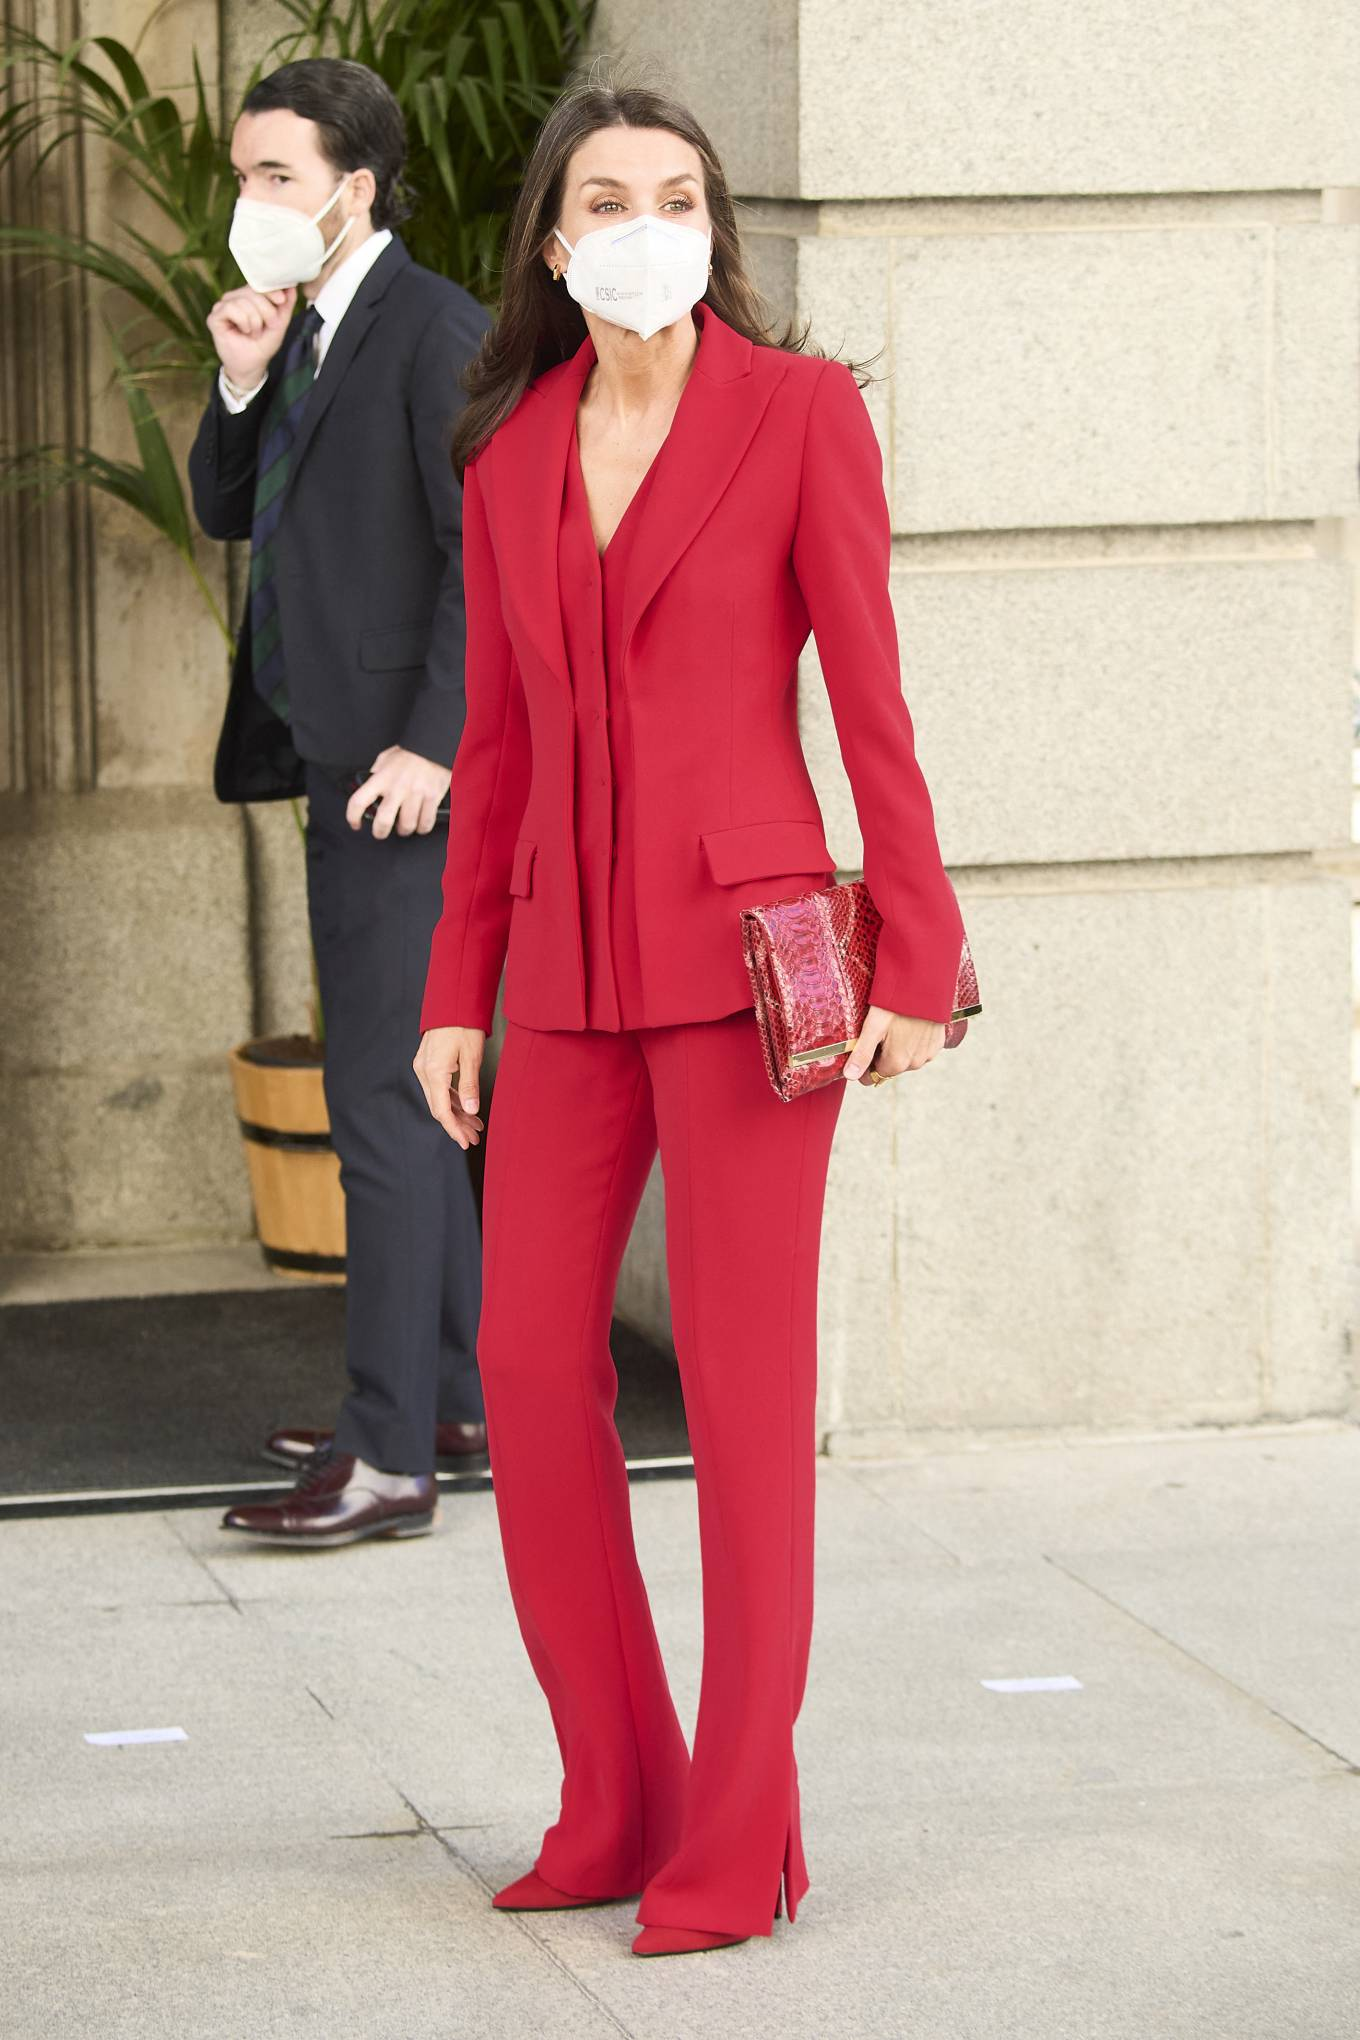 Queen Letizia Of Spain 2021 : Queen Letizia of Spain – In all red attends the tribute to the figure of Clara Campoamor in Madrid-05